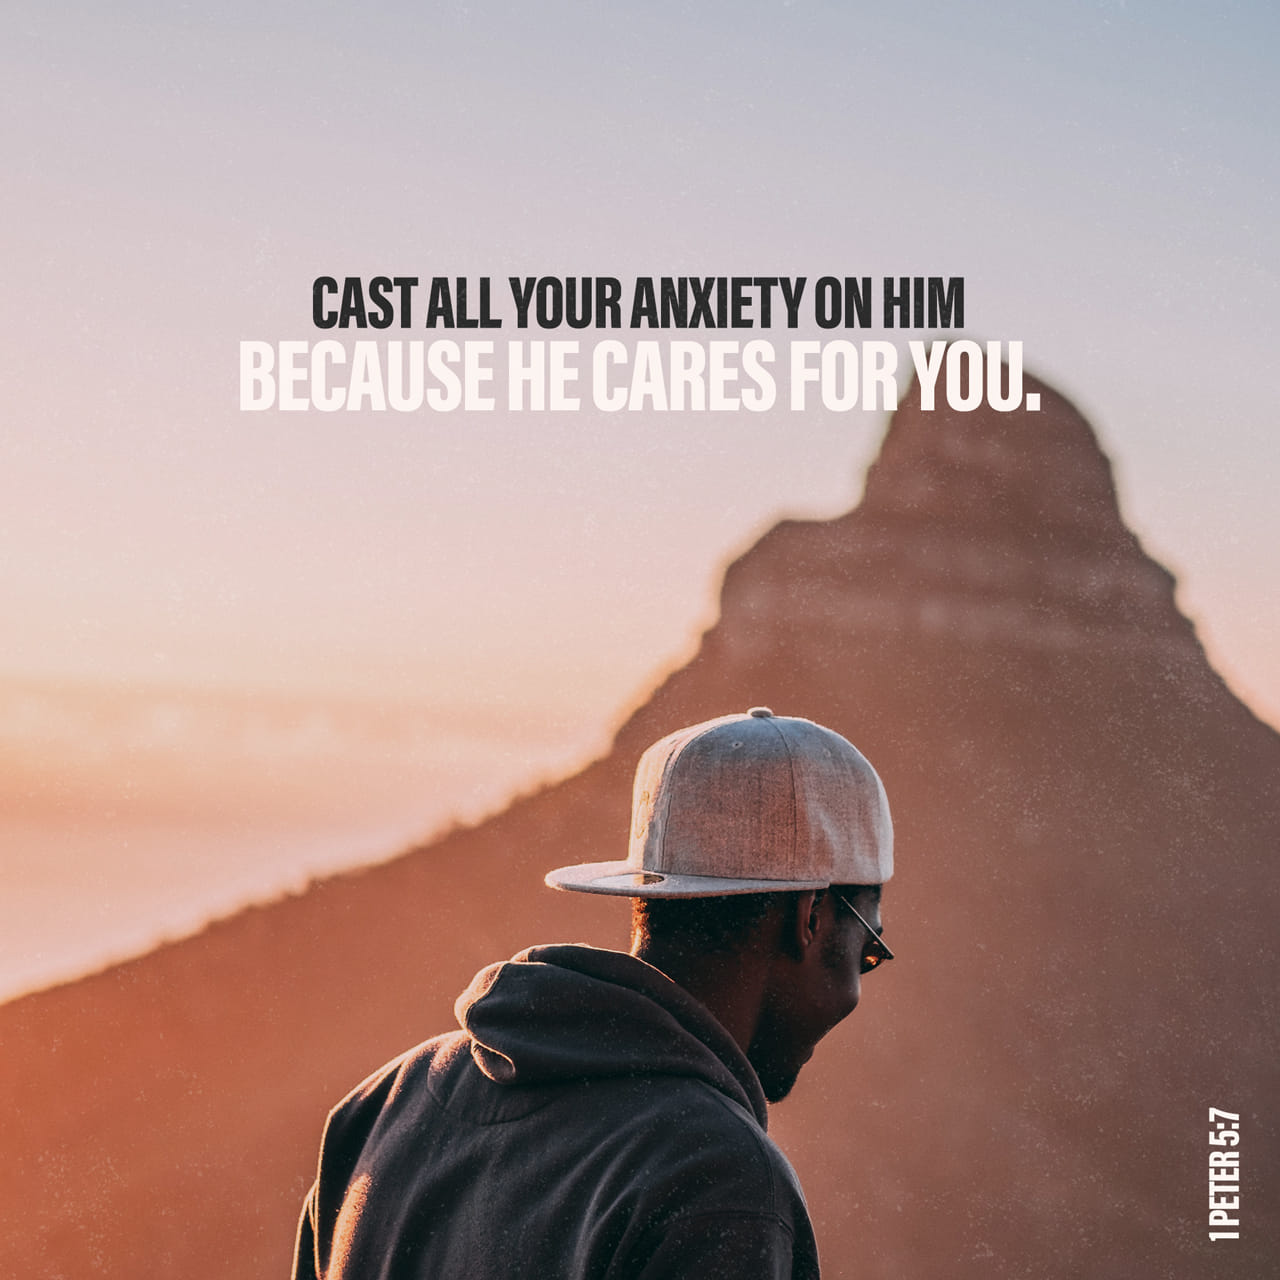 1 Peter 5:7 Give all your worries and cares to God, for he cares